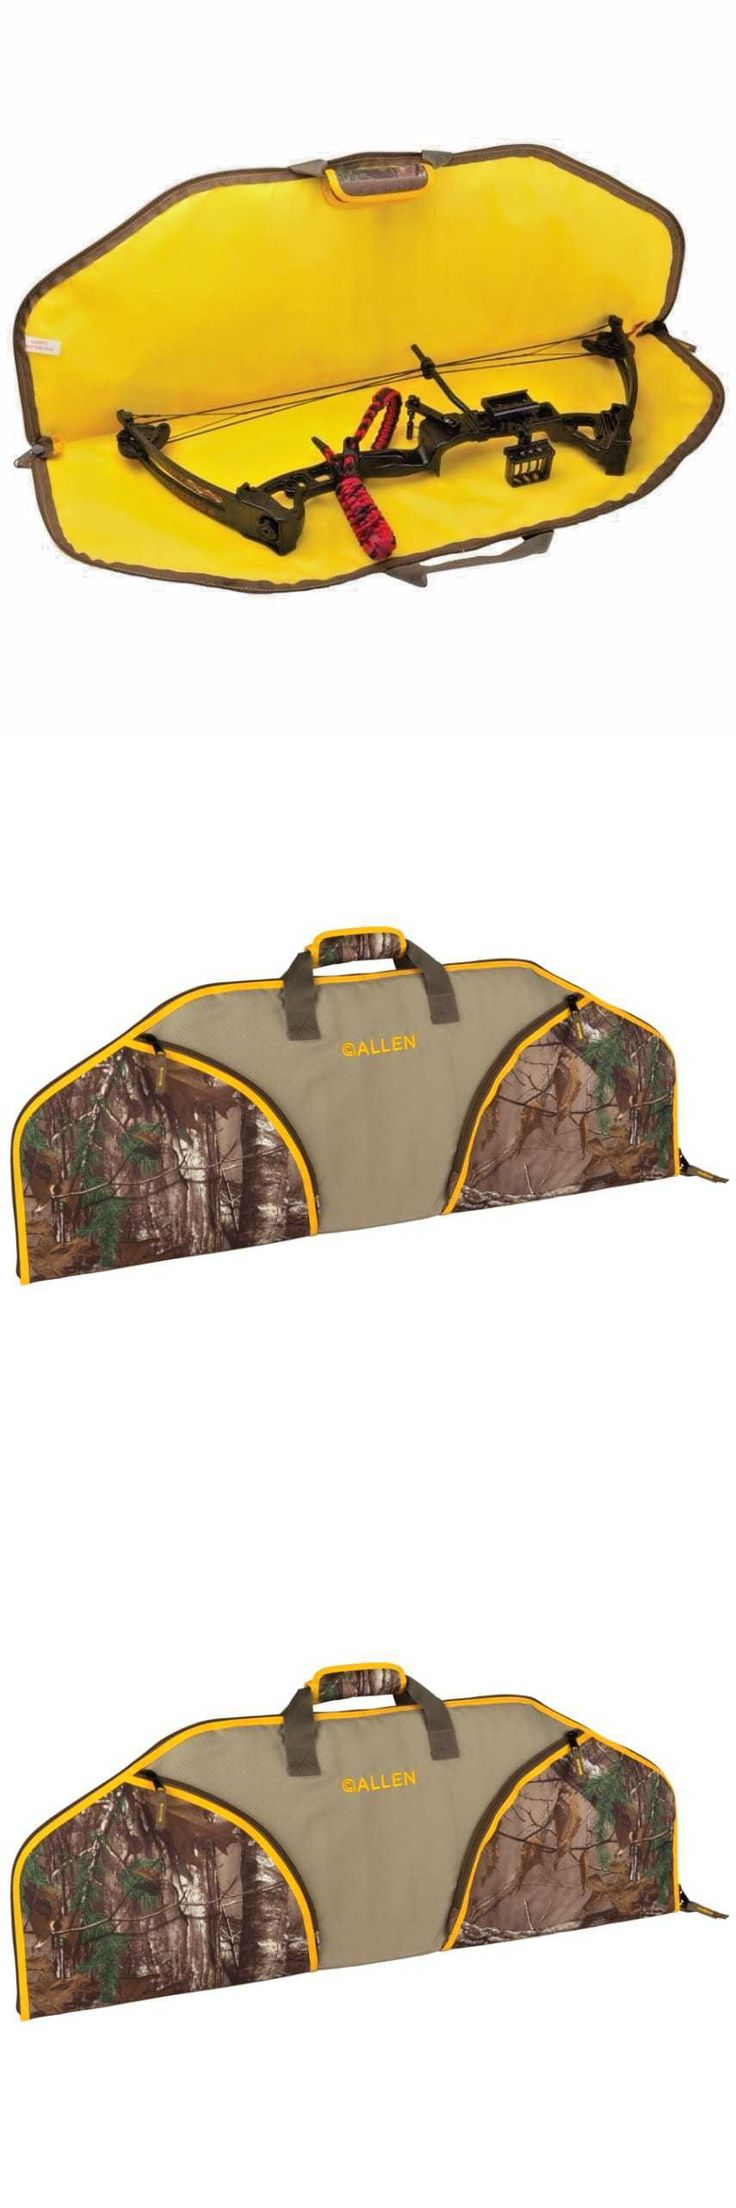 Bags Cases and Covers 181300: Allen Case Compact Bow Compound Archery Hunting Protector New Arrow, Camouflage -> BUY IT NOW ONLY: $36.59 on eBay!